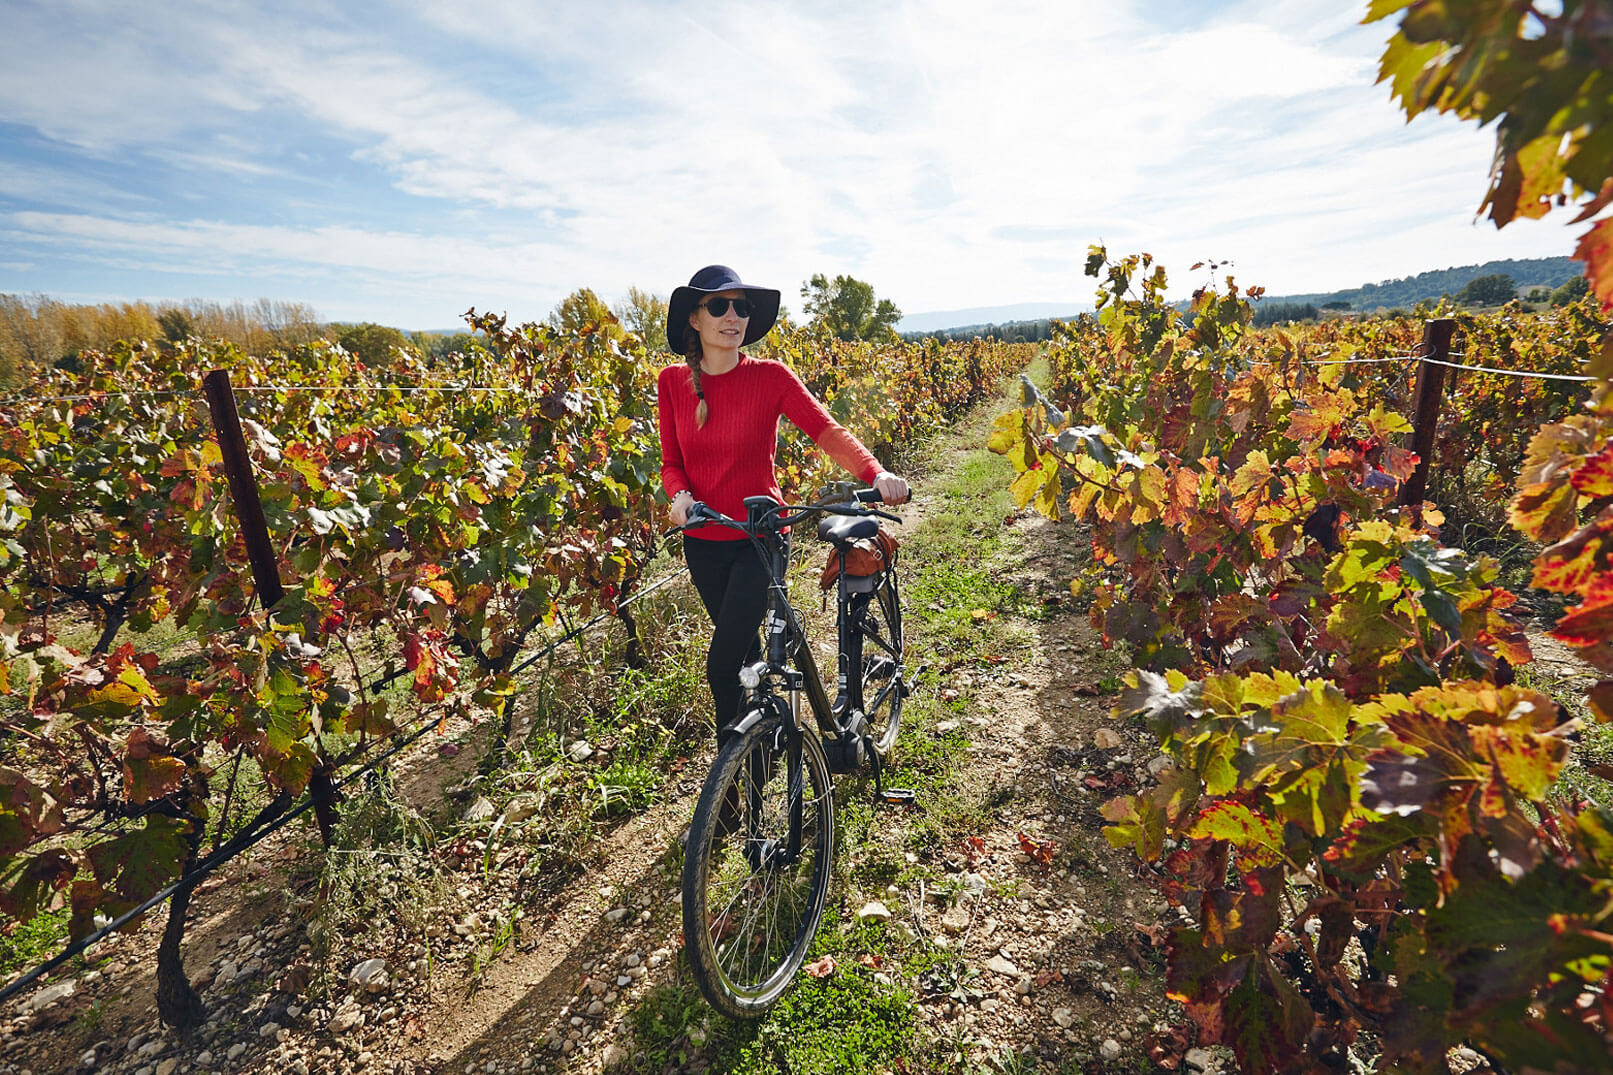 Strolling in the vineyards of Provence @ Coquard